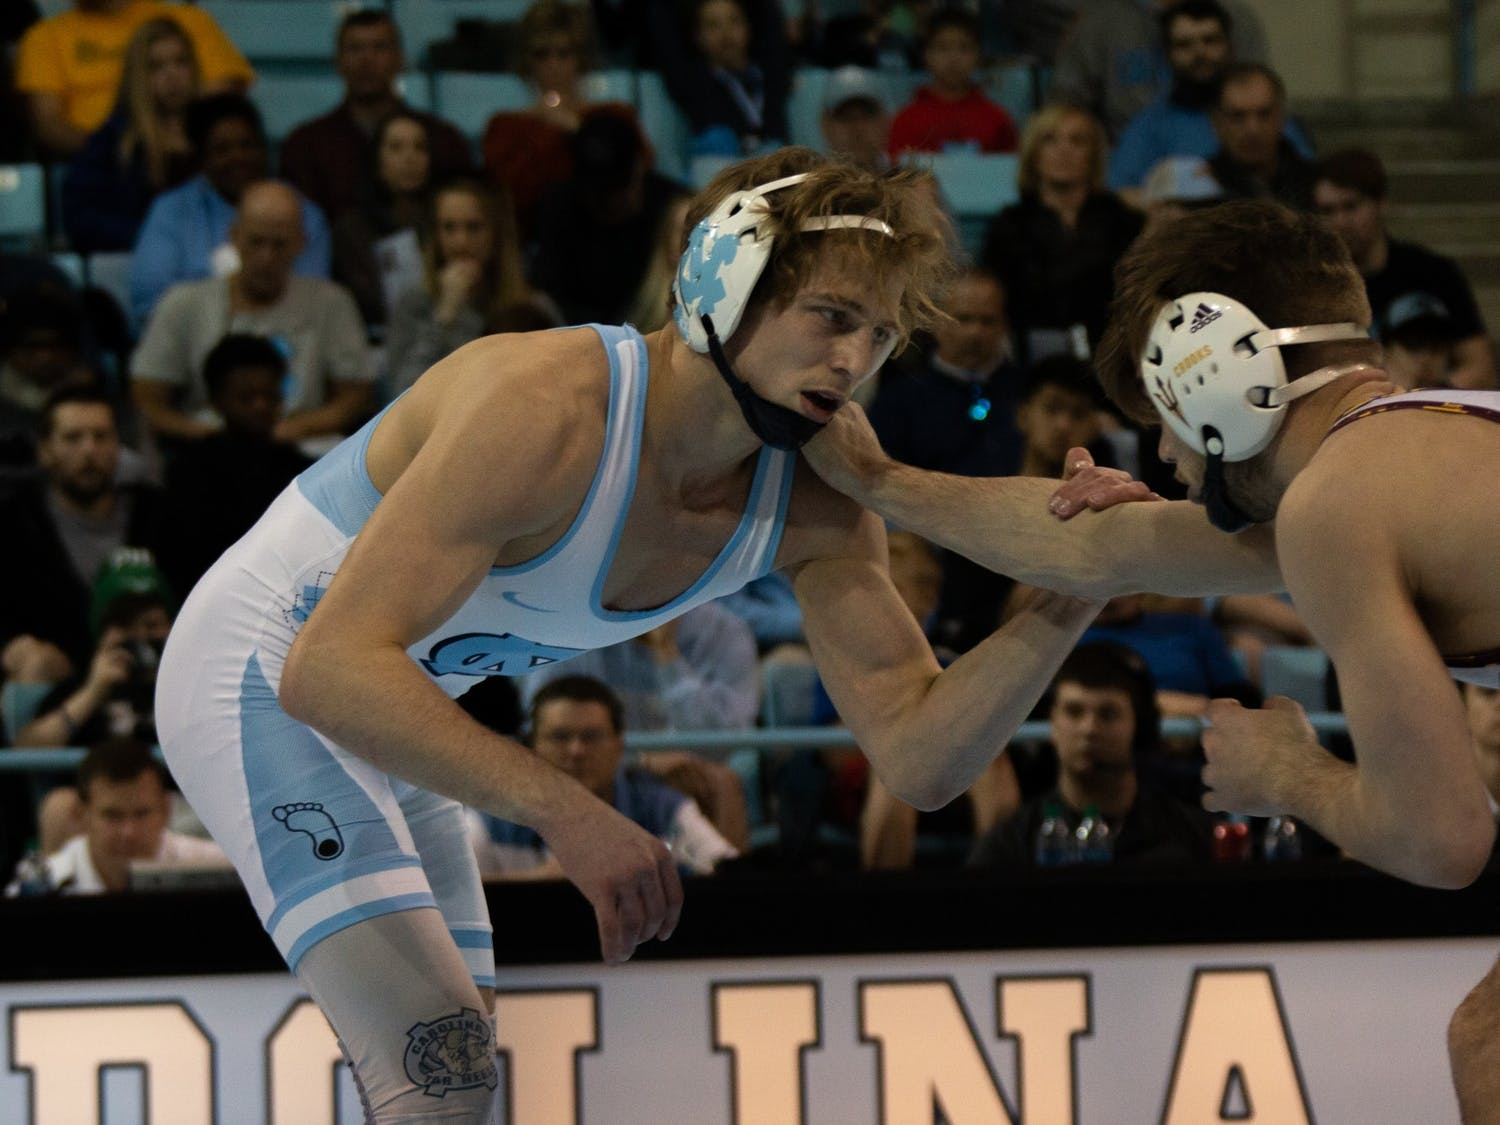 UNC redshirt sophomore Zach Sherman wrestles against his opponent in the match against Arizona State in the Carmichael Arena on Sunday, Feb. 23, 2020. Zach won this bout but UNC lost 9-22 overall.